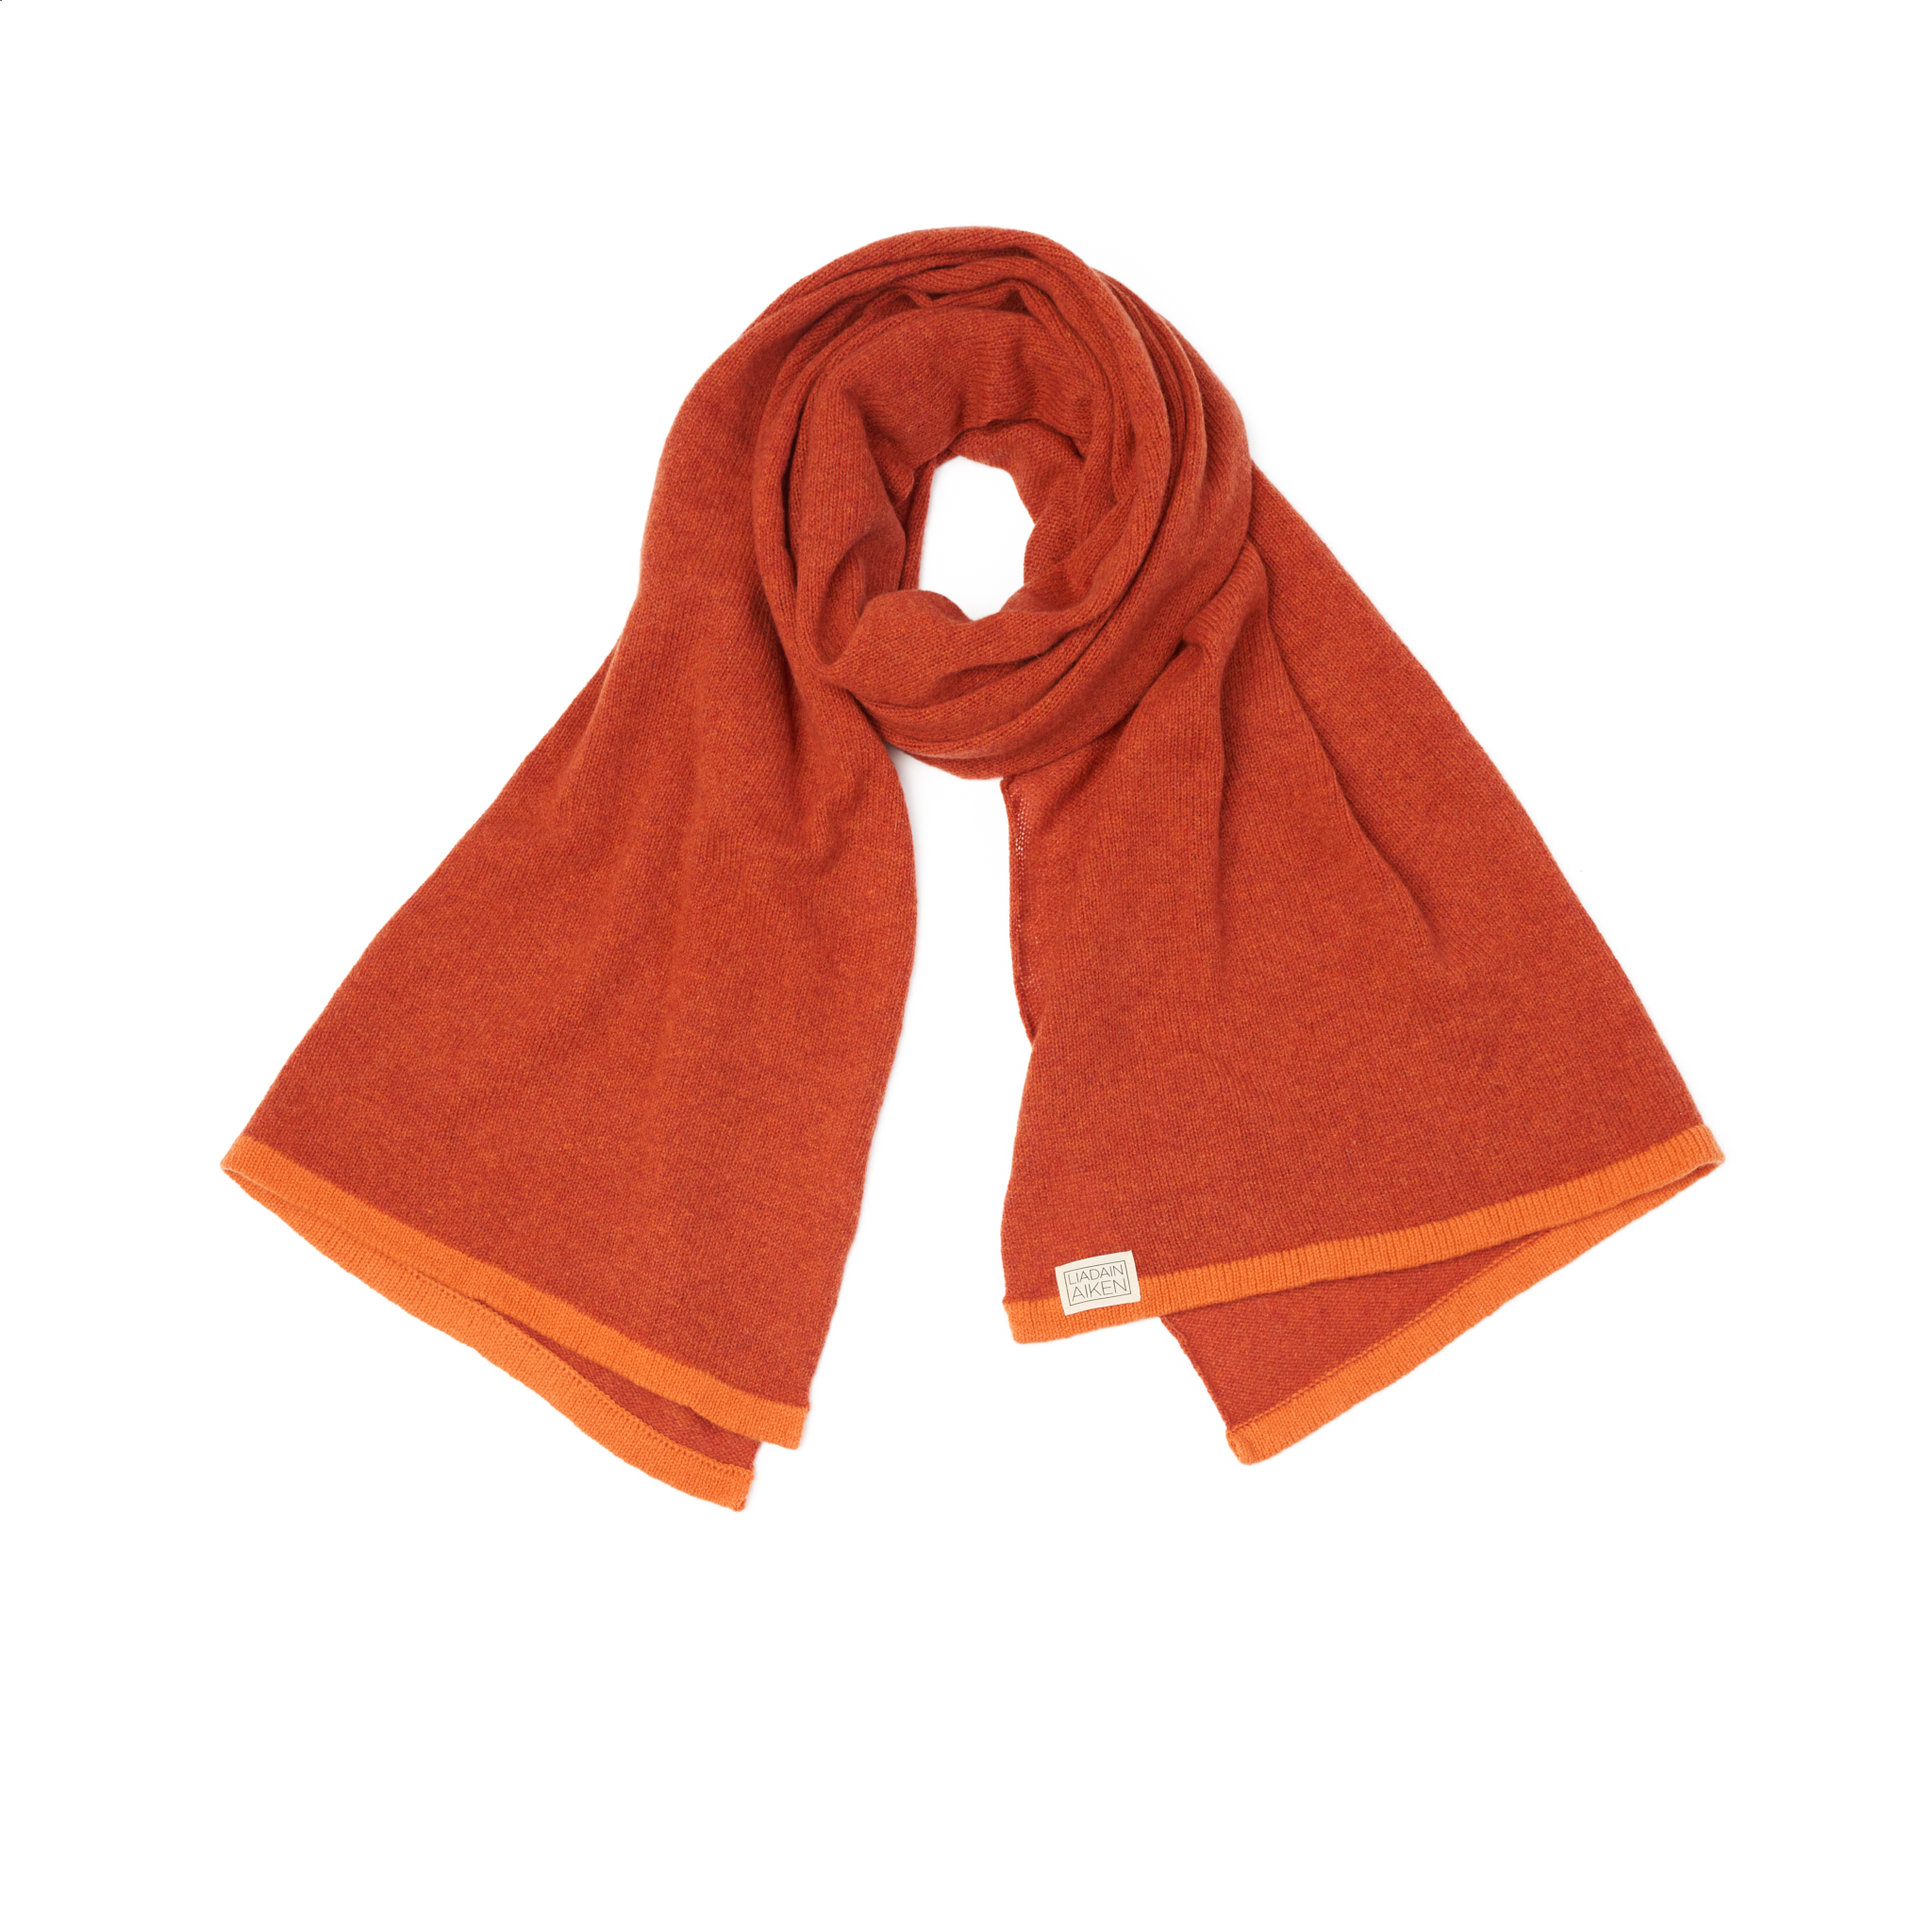 68cf9ef261577 Orange scarf lambswool Slow movement Burnt Orange Rust wool handmade